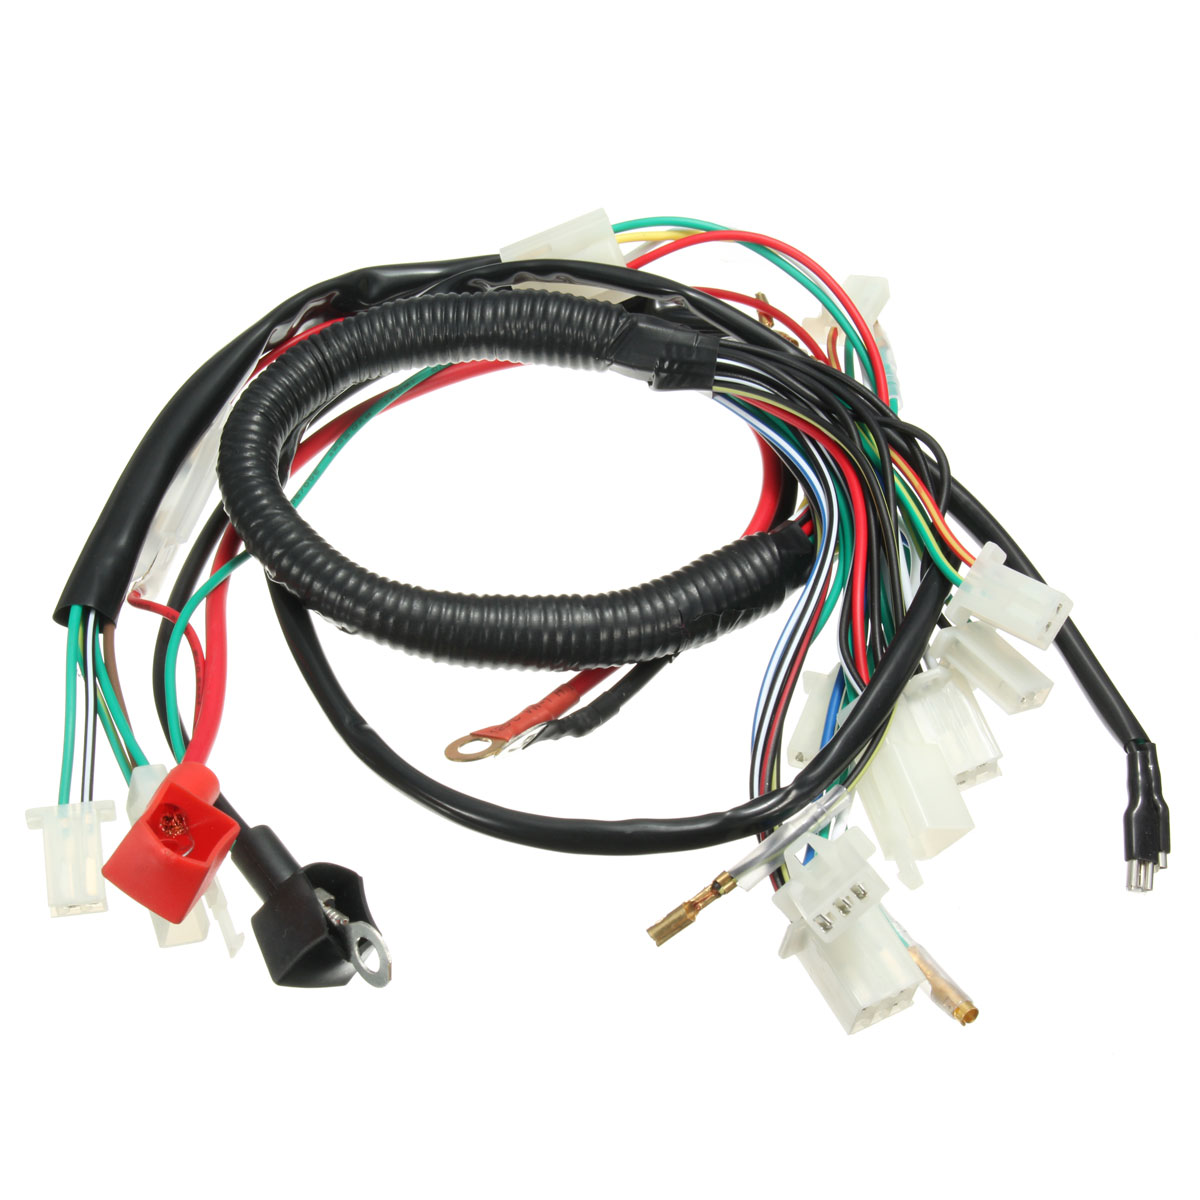 hight resolution of wiring harness loom for chinese electric start quads atv 50 70 90cc 110cc 125cc walmart com